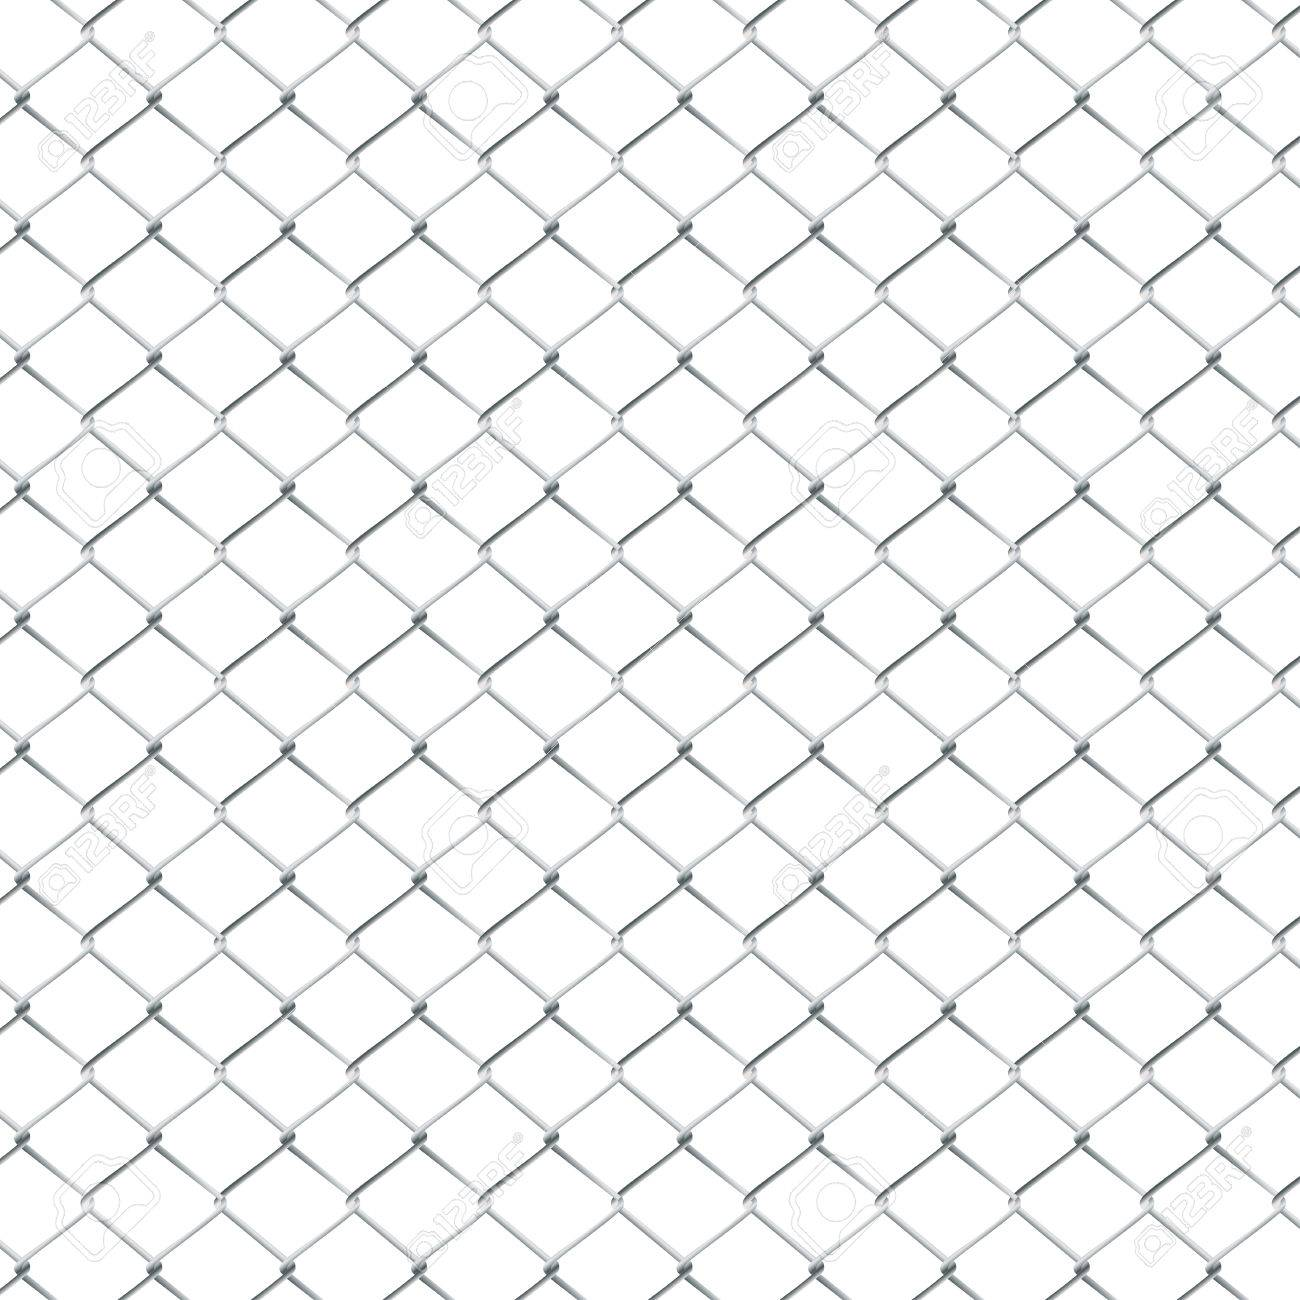 Fence Made Of Metal Wire Mesh Illustration On White Background ...